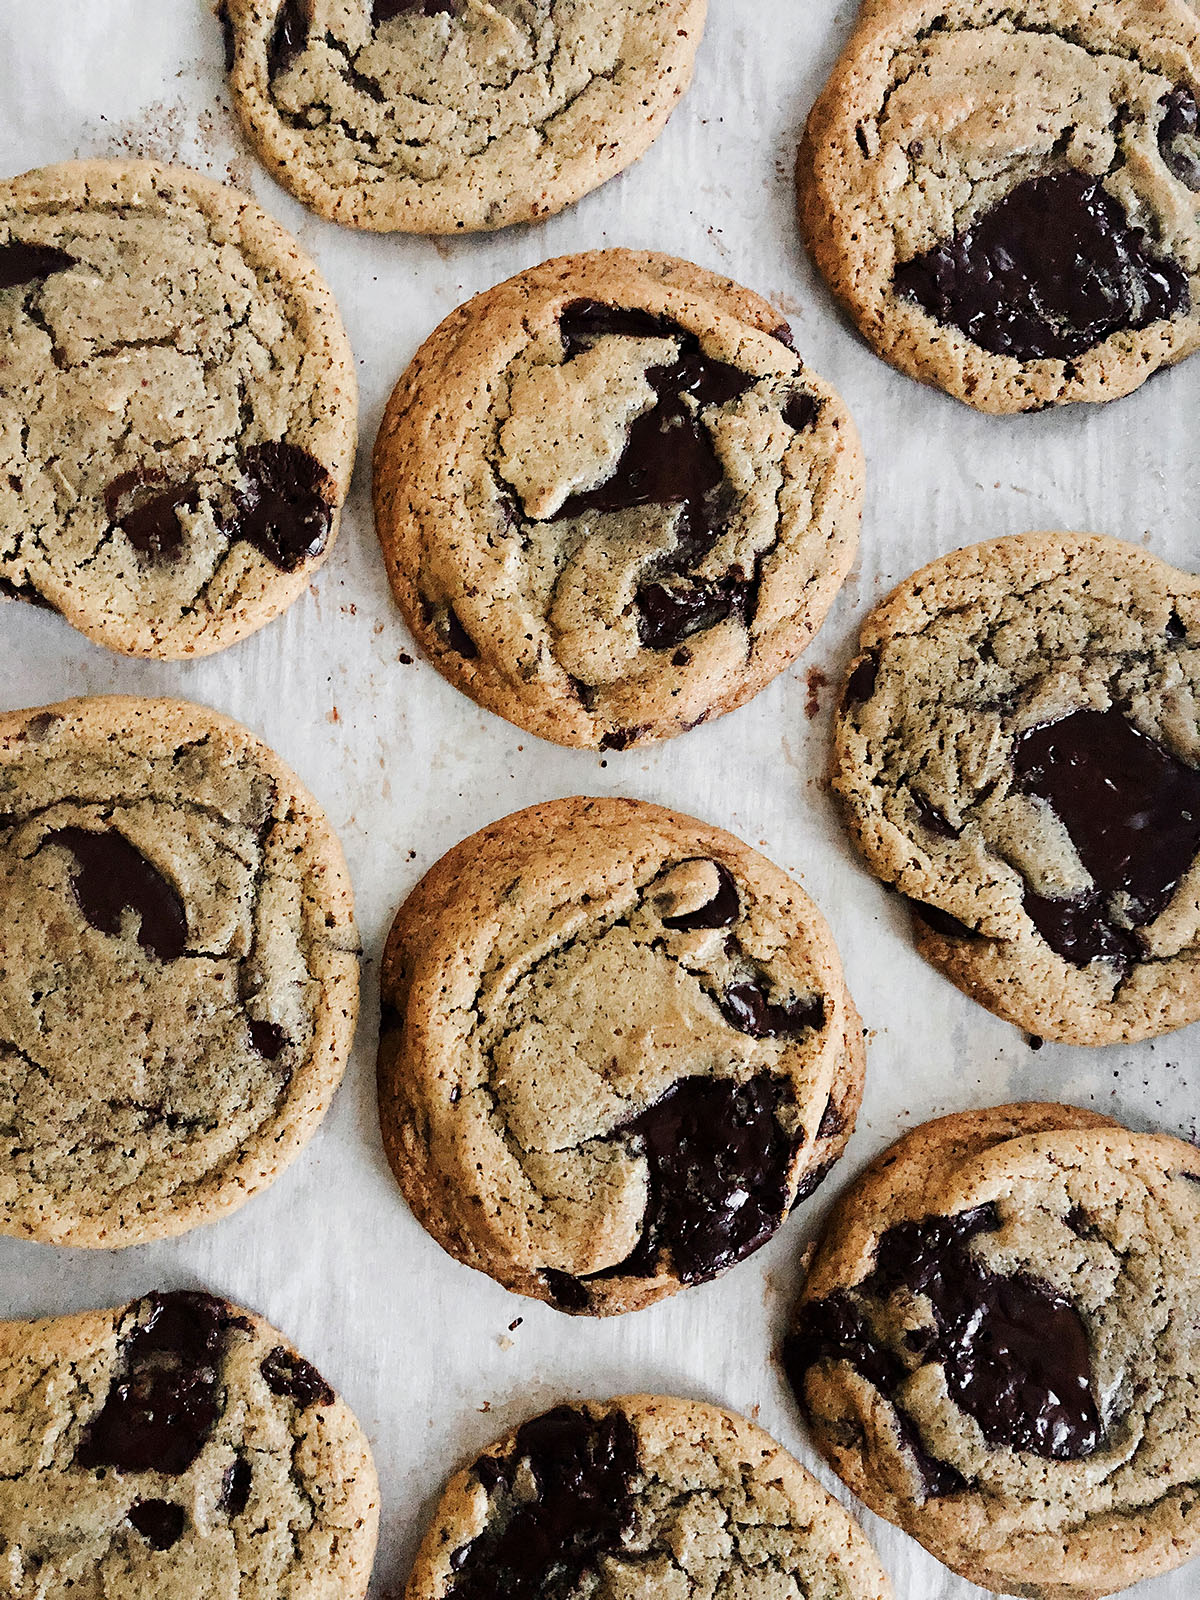 10 Chocolate Chip Cookie Recipes Everyone Should Try + How to Get the Best Results